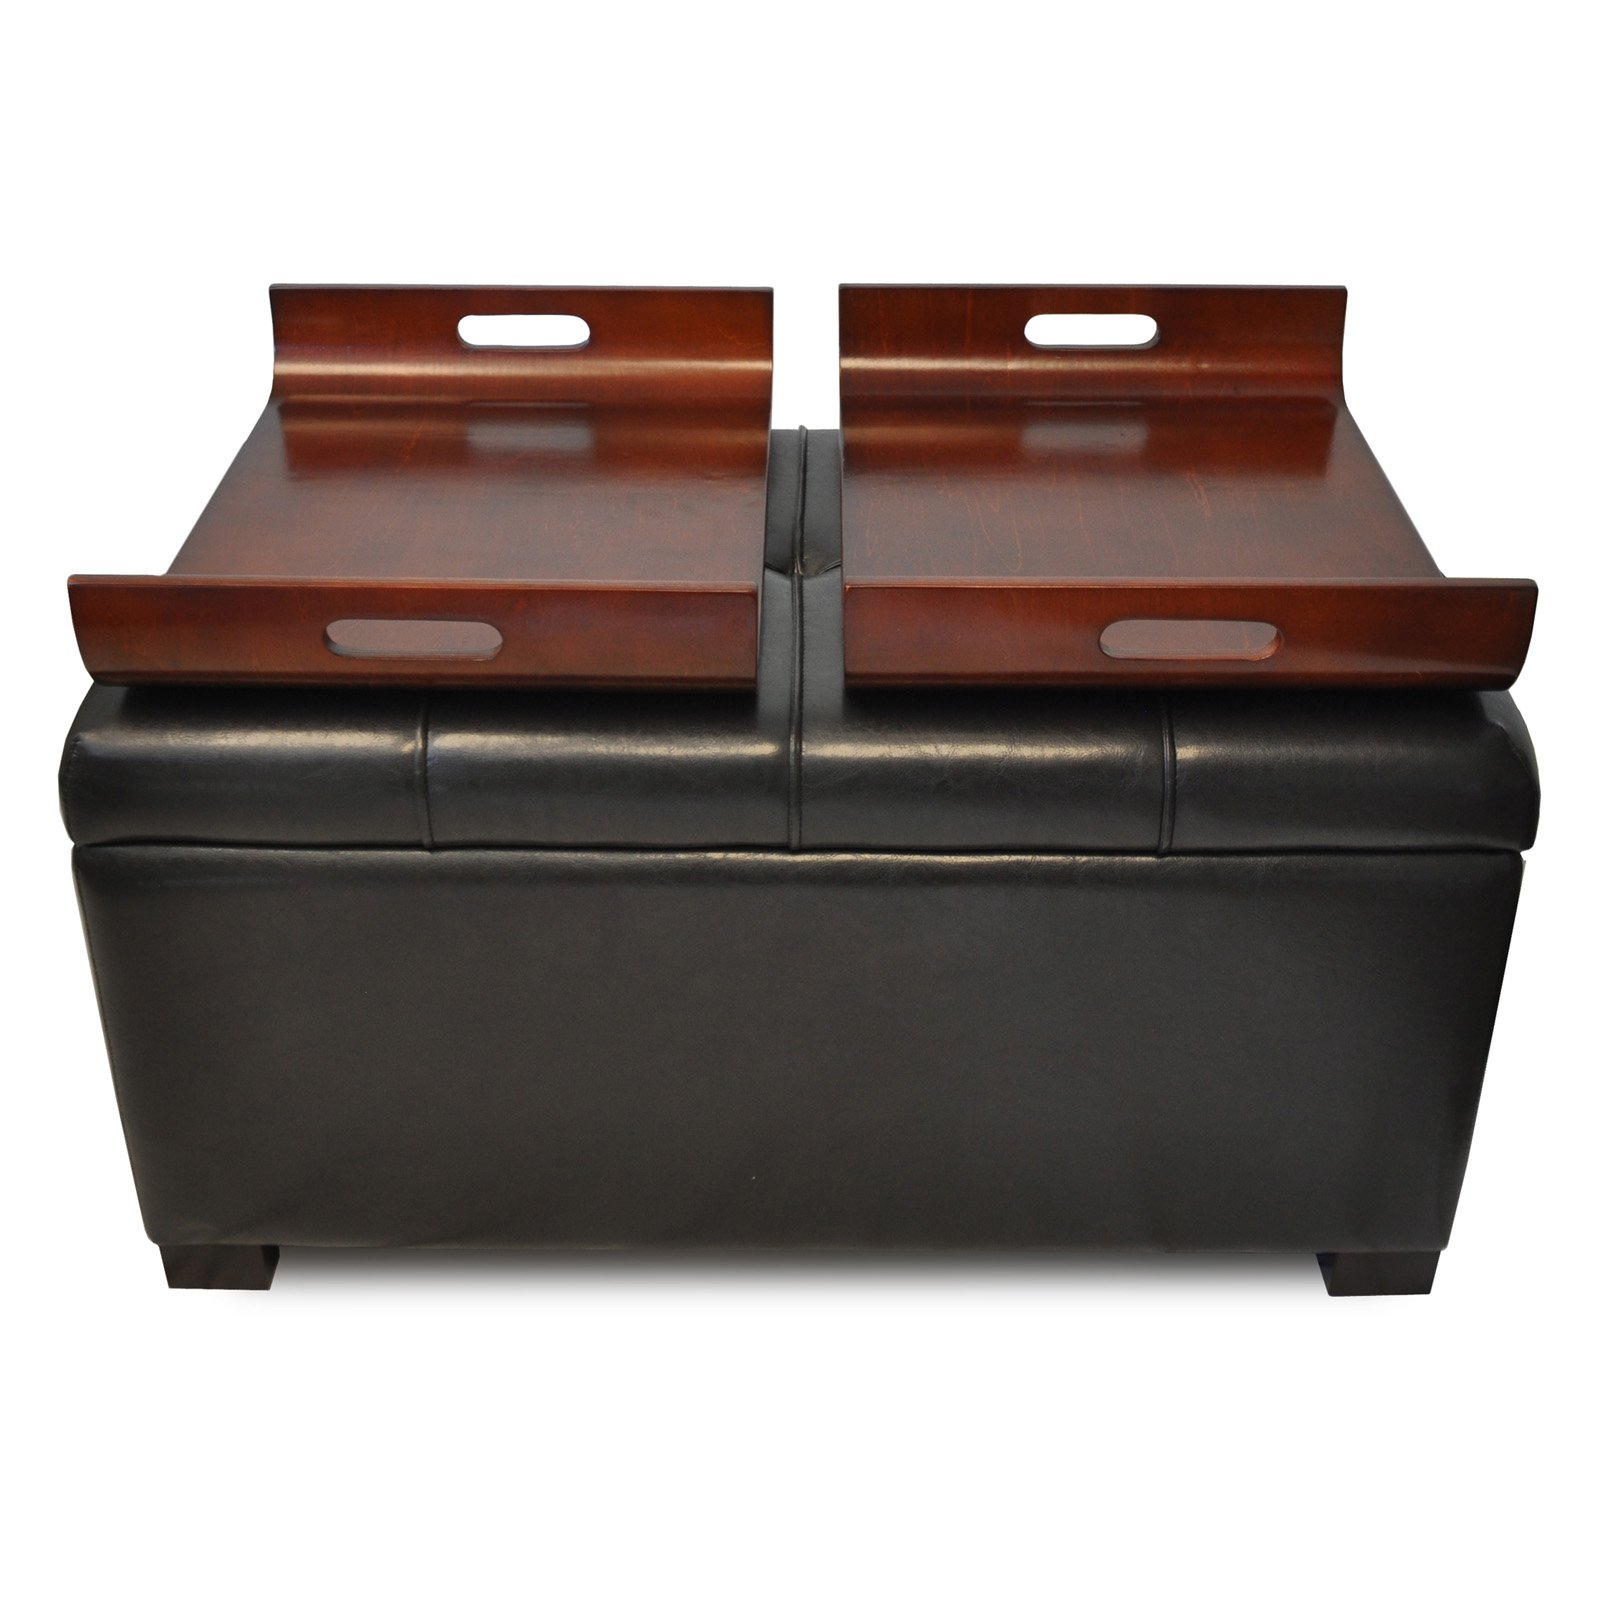 Wonderful Design4Comfort Faux Leather Storage Ottoman With Trays, Espresso